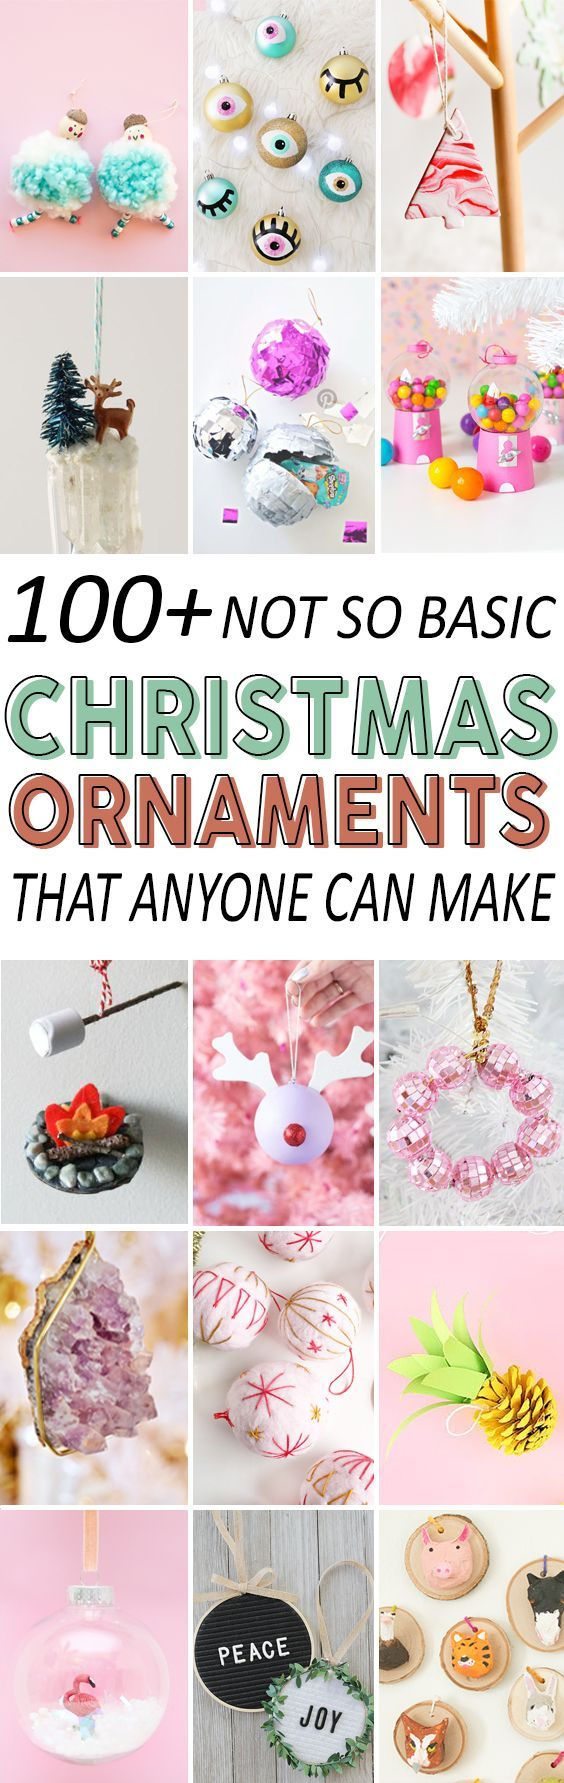 Check out these 100+ ideas for handmade ornaments this Christmas. #diy #christmas #ornaments